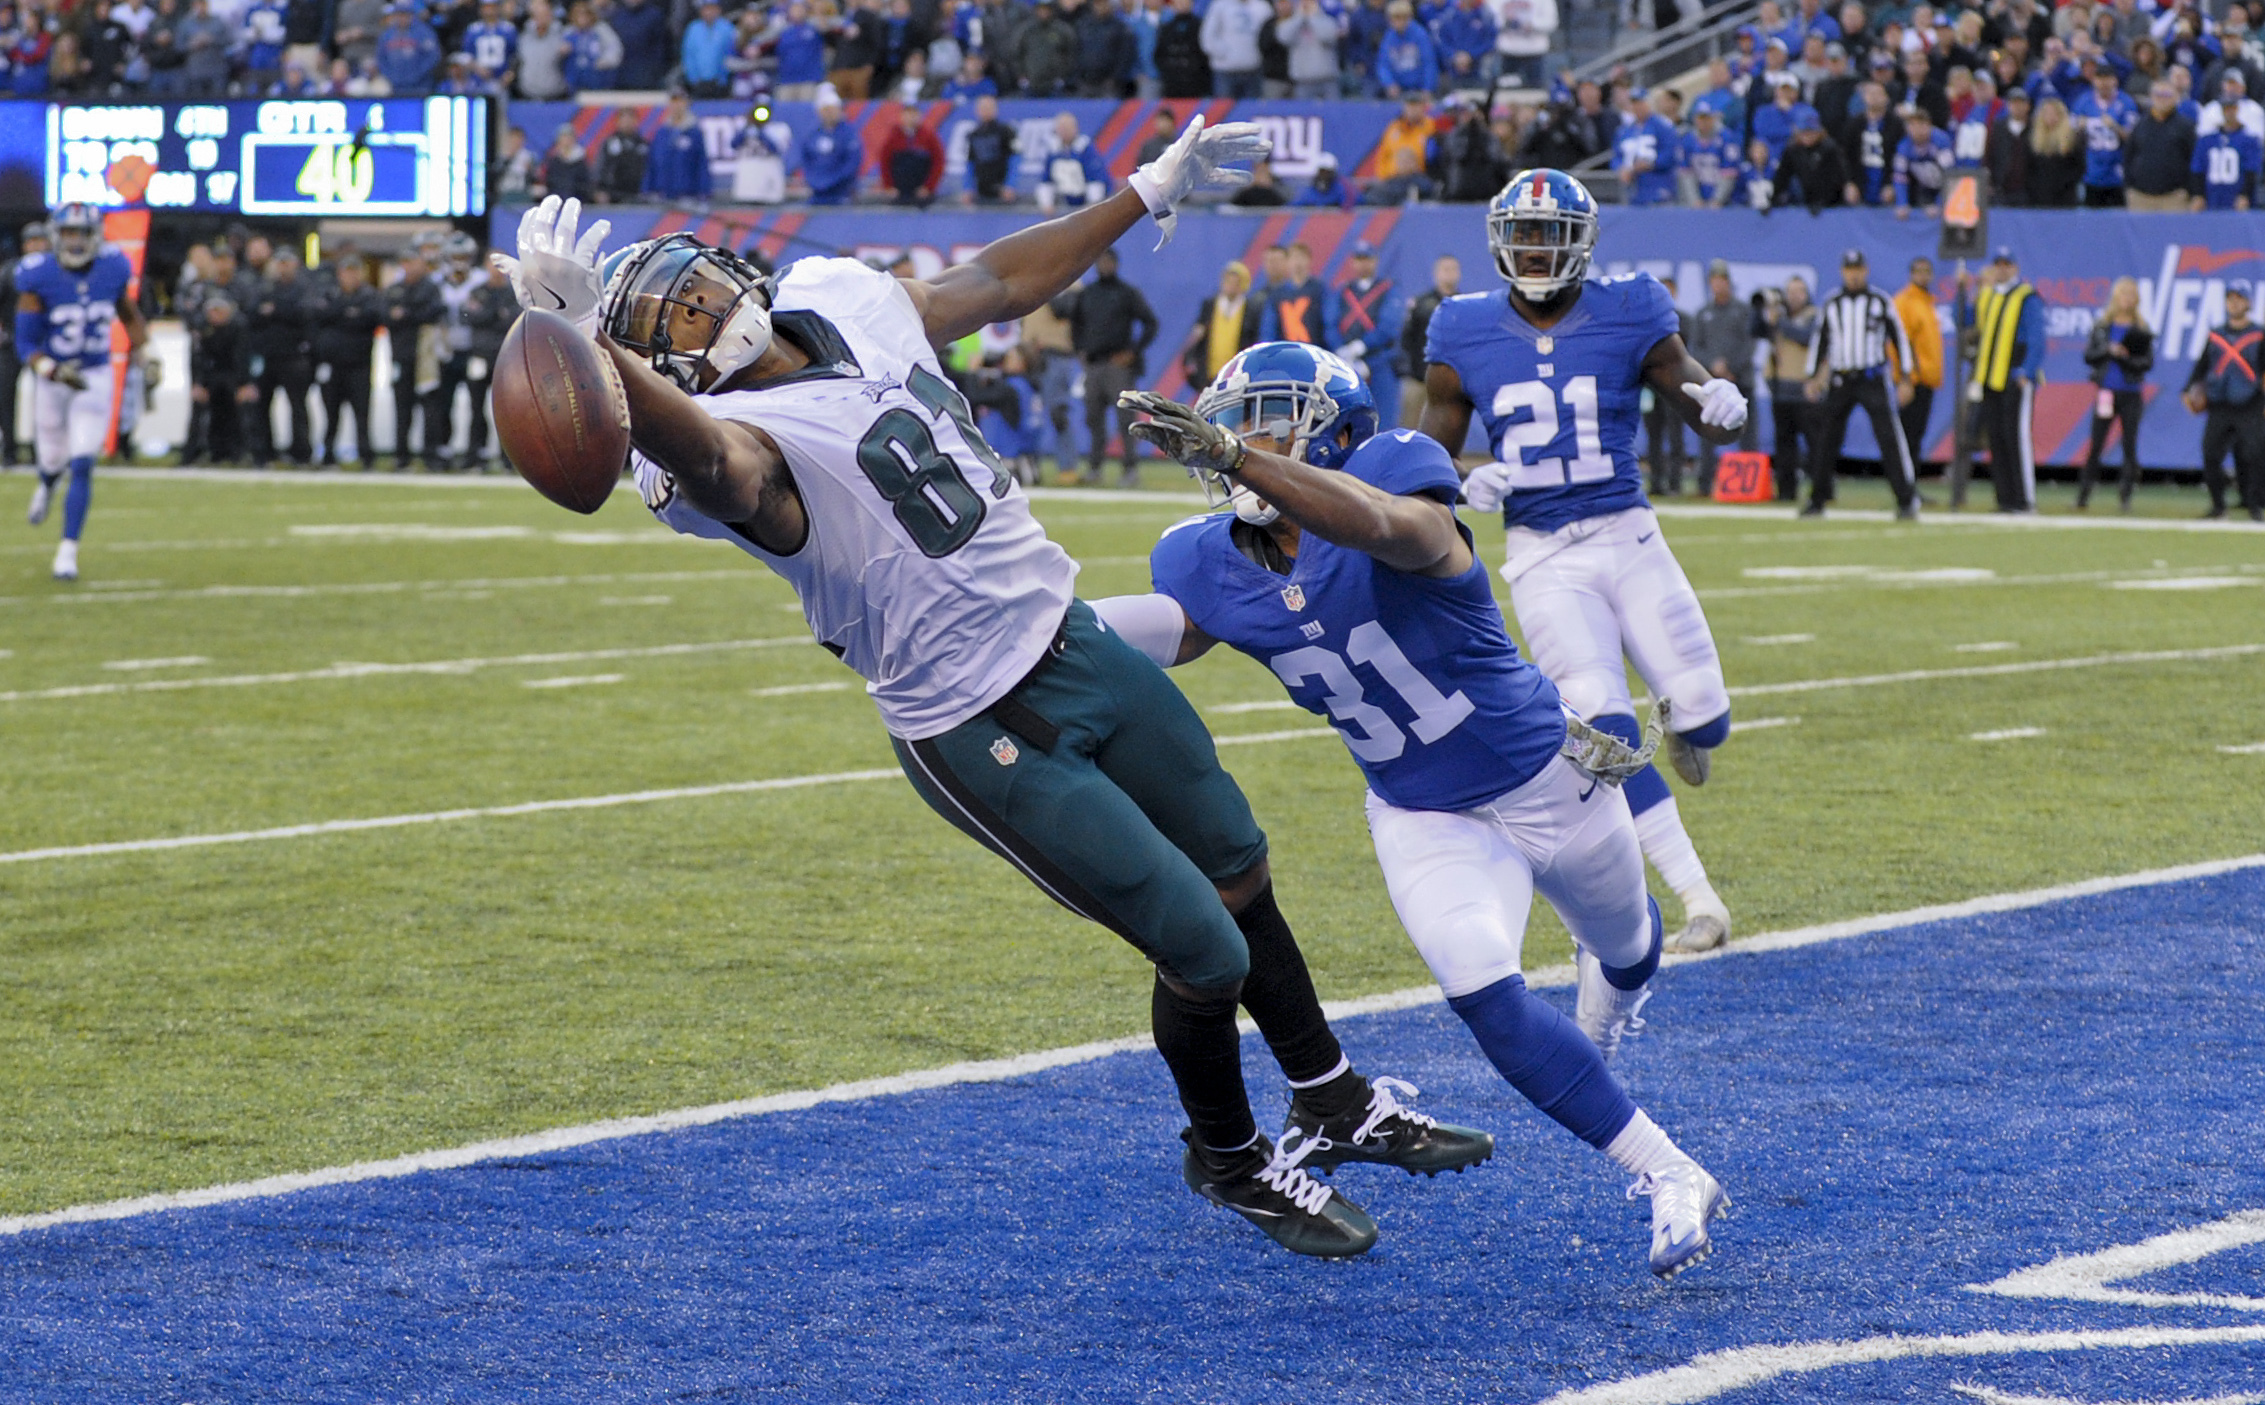 Philadelphia Eagles wide receiver Jordan Matthews (81) can't make the catch in the end zone under pressure from New York Giants cornerback Trevin Wade (31) on 4th down during the fourth quarter of an NFL football game, Sunday, Nov. 6, 2016, in East Ruther